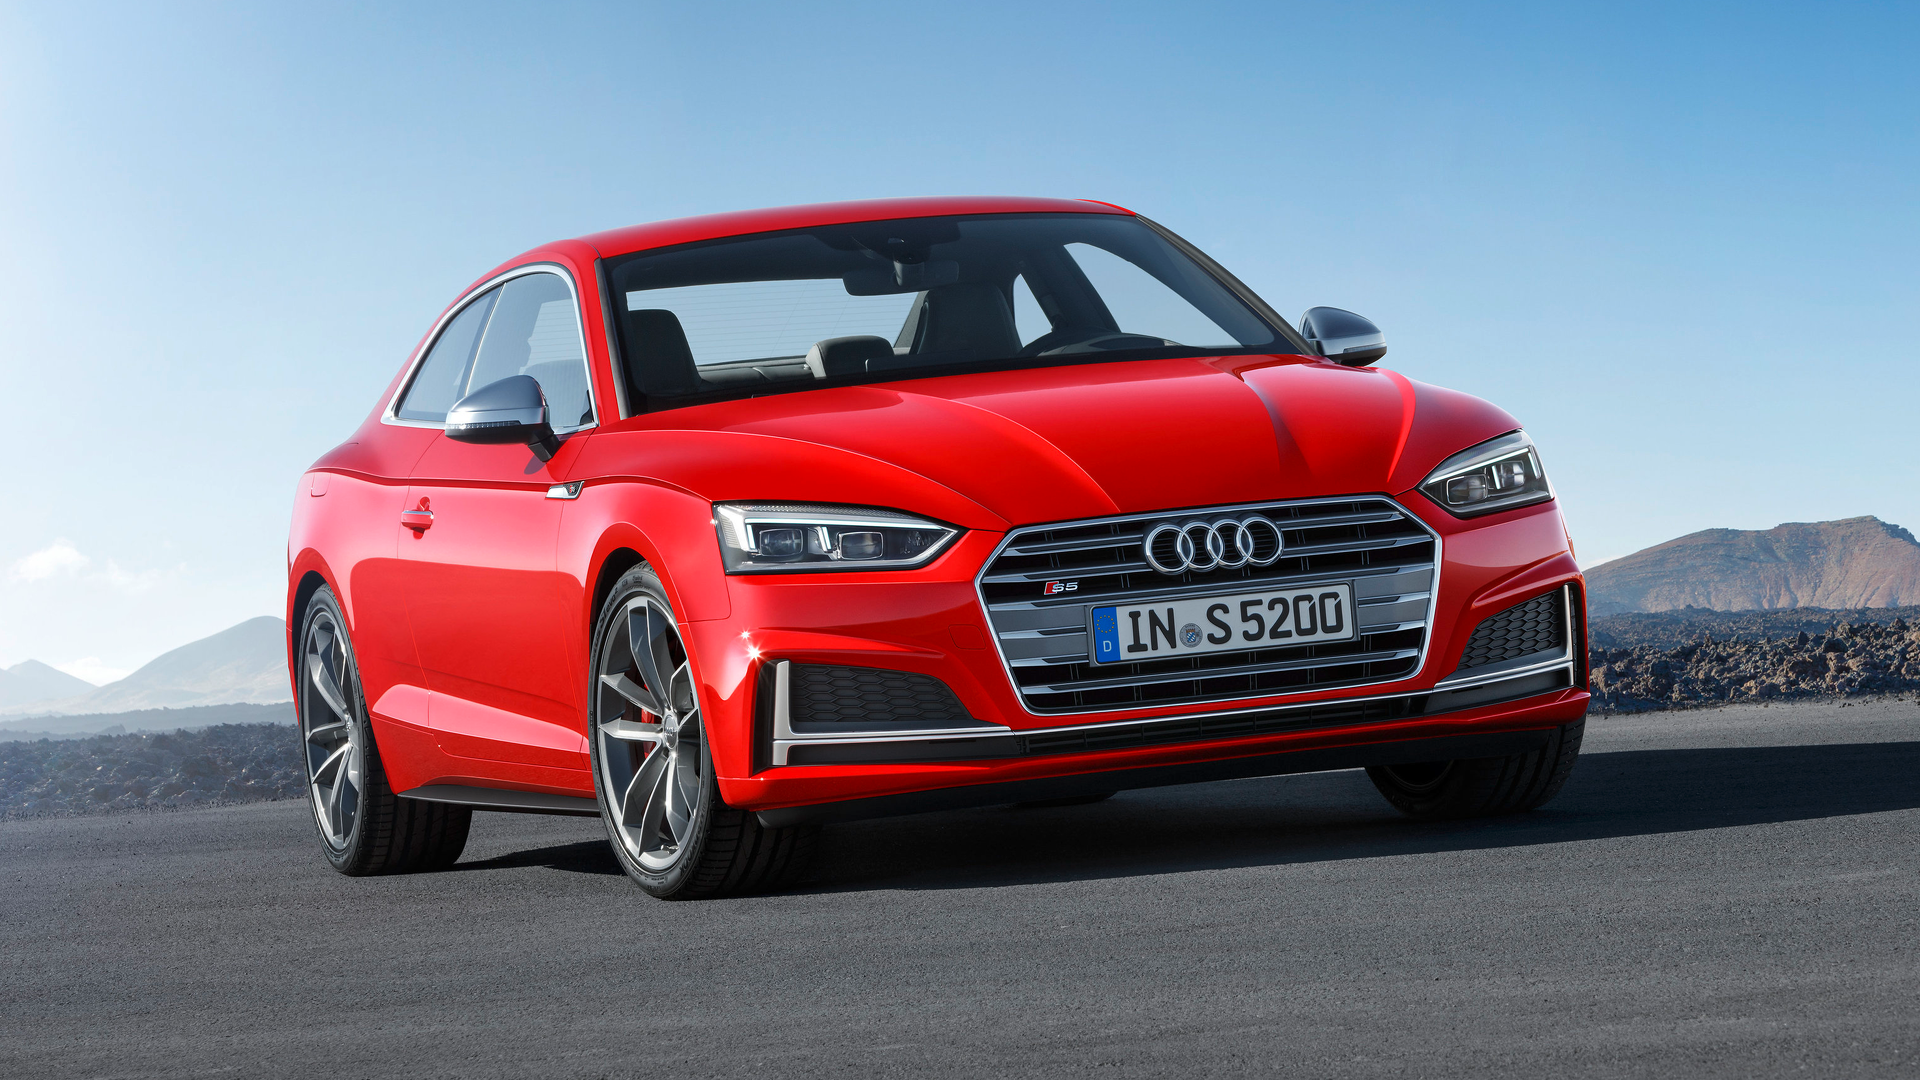 All New Audi A5 S5 Coupes Revealed In Germany